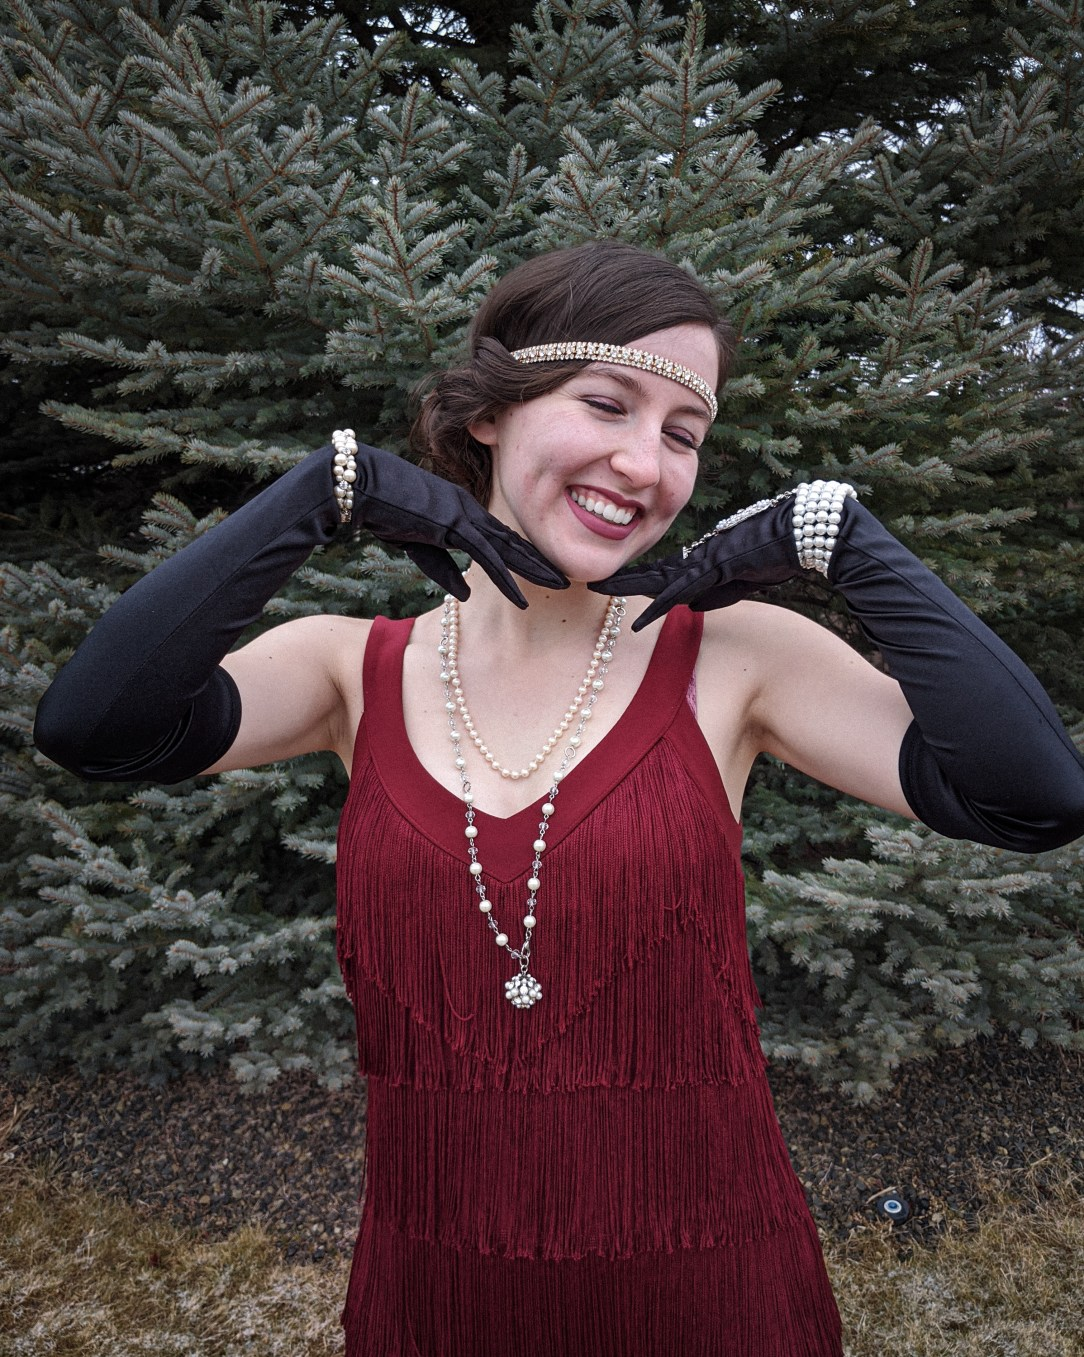 Roaring 20s, flapper girl, new decade, 2020